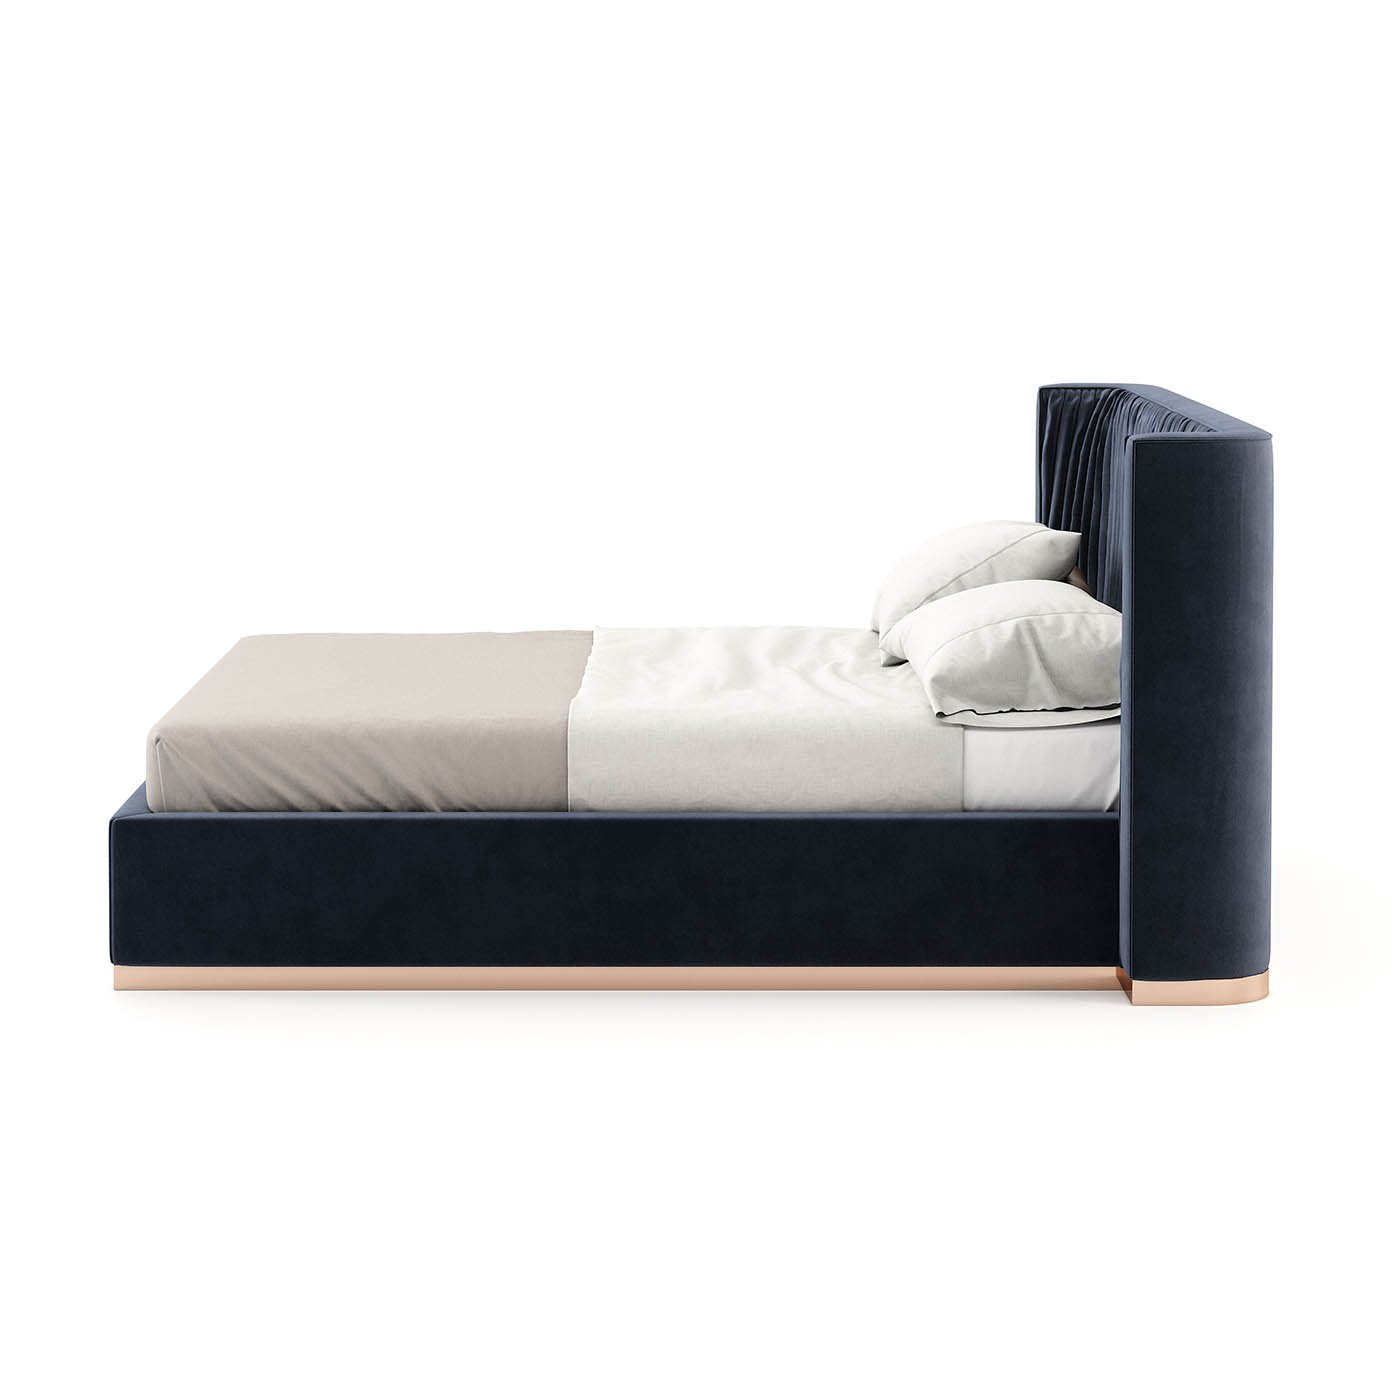 Miuzza Bed